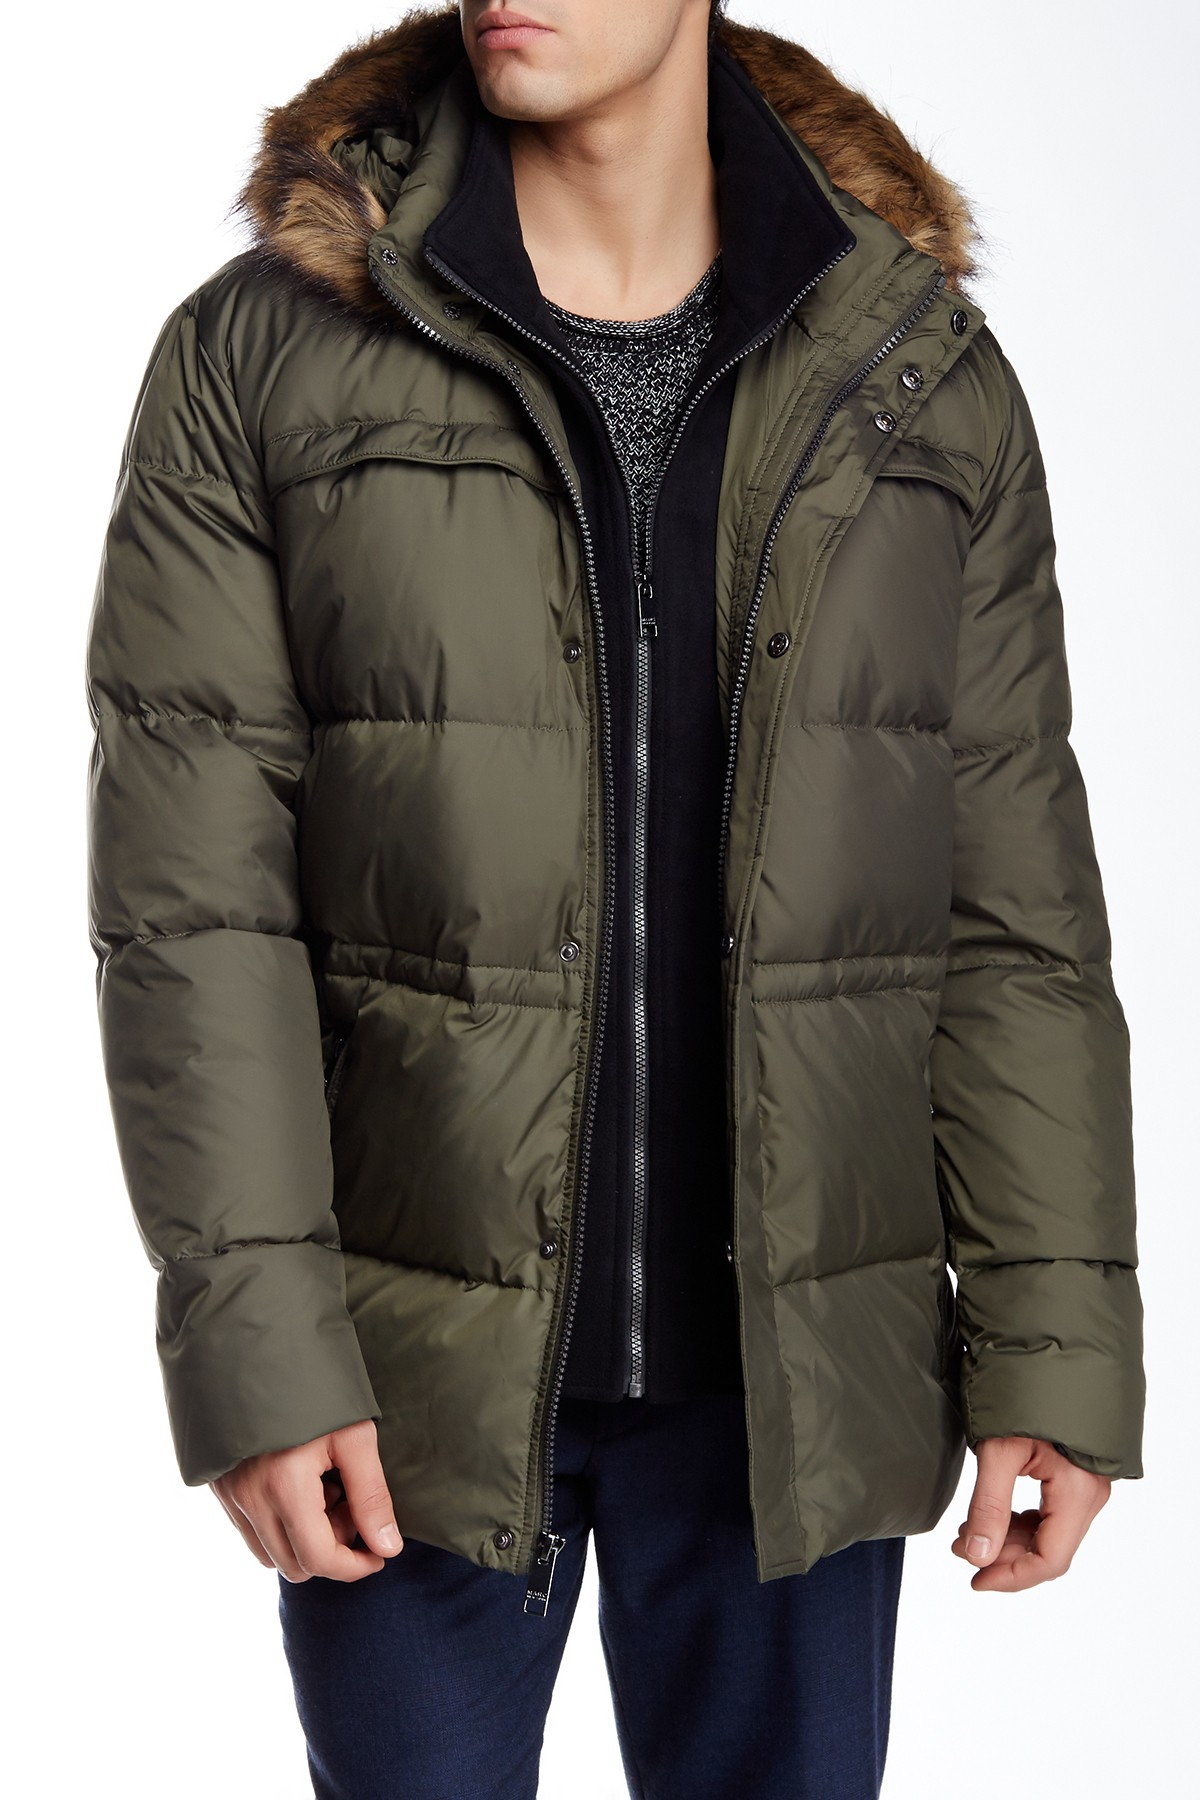 Marc New York Tundra Faux Fur Hooded Jacket In Green For